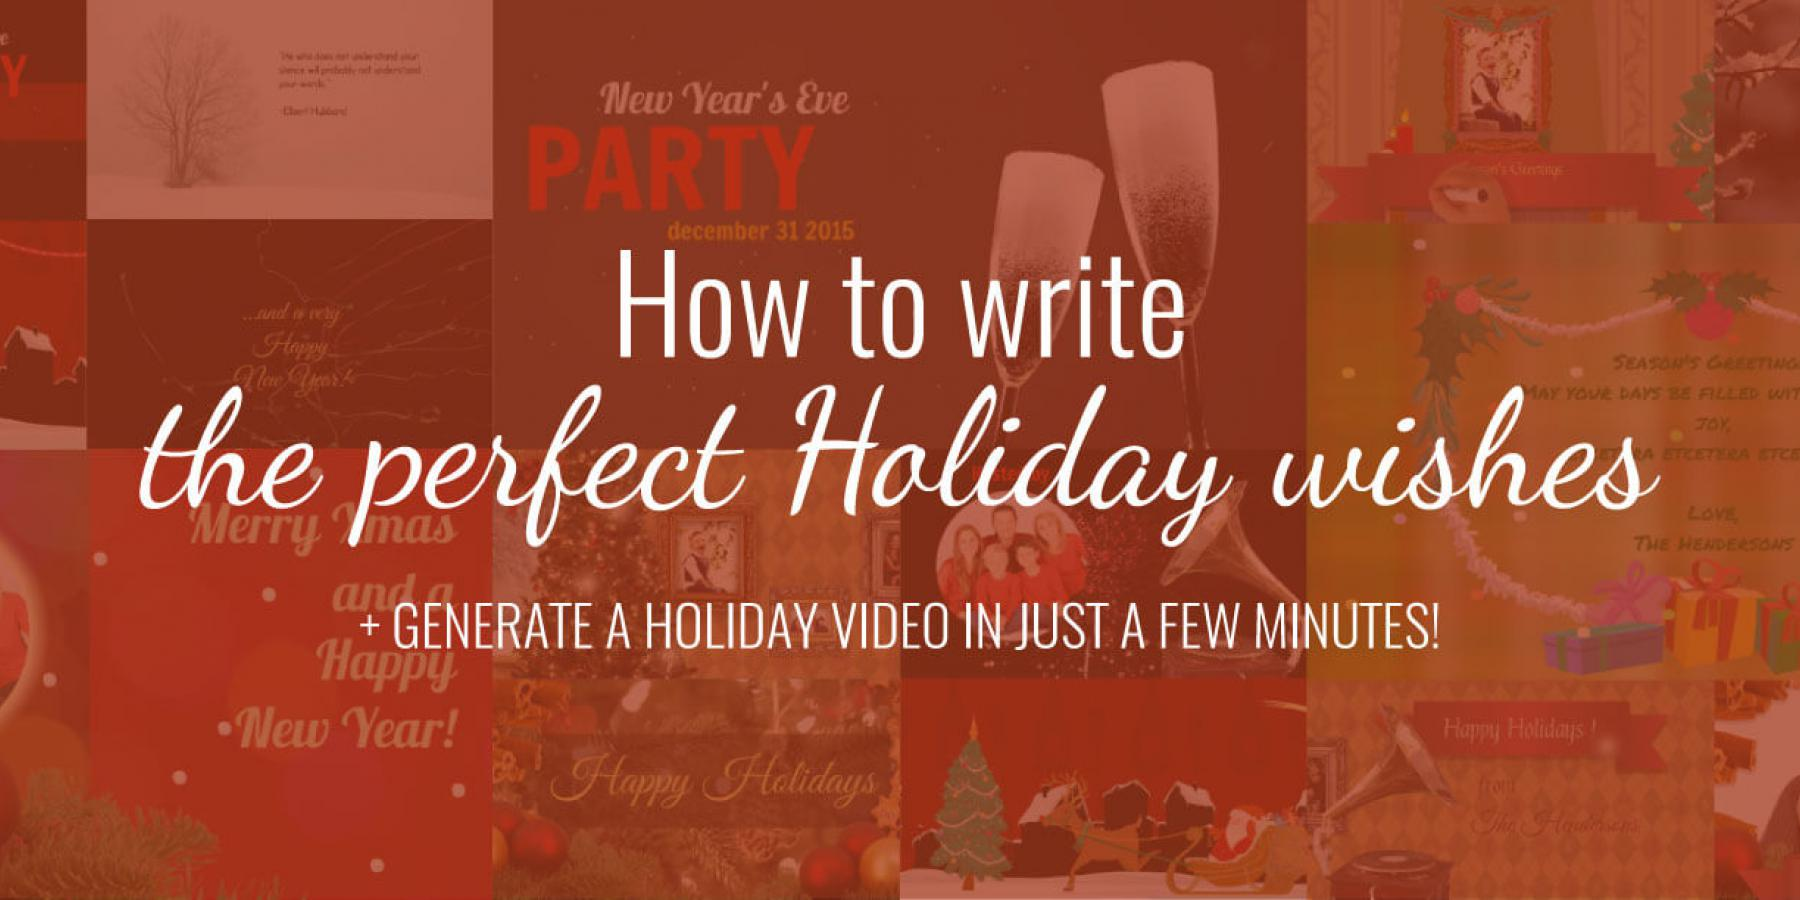 how to write the perfect holiday wishes